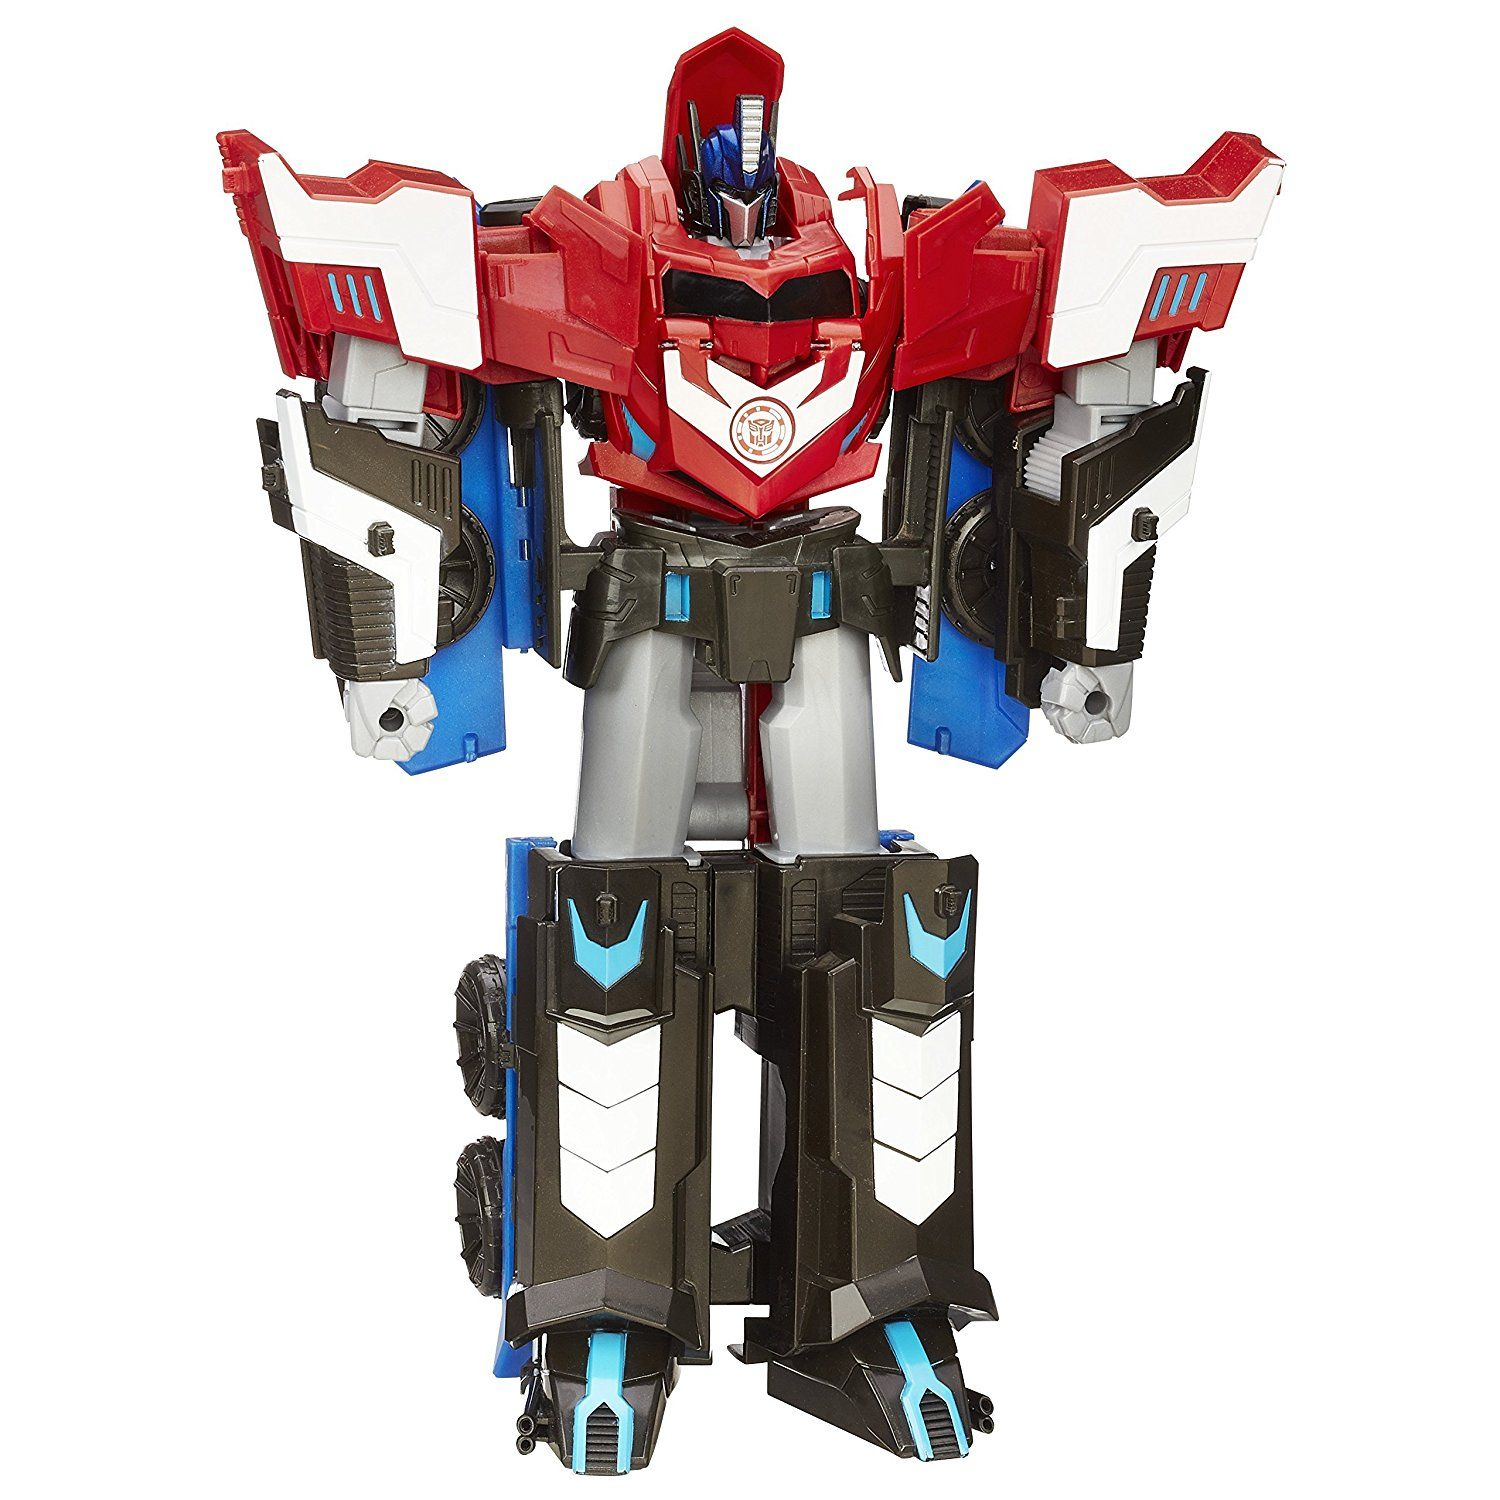 Toys R Us Küchenspielzeug Hasbro Transformers B1564eu4 Robots In Disguise Mega Optimus